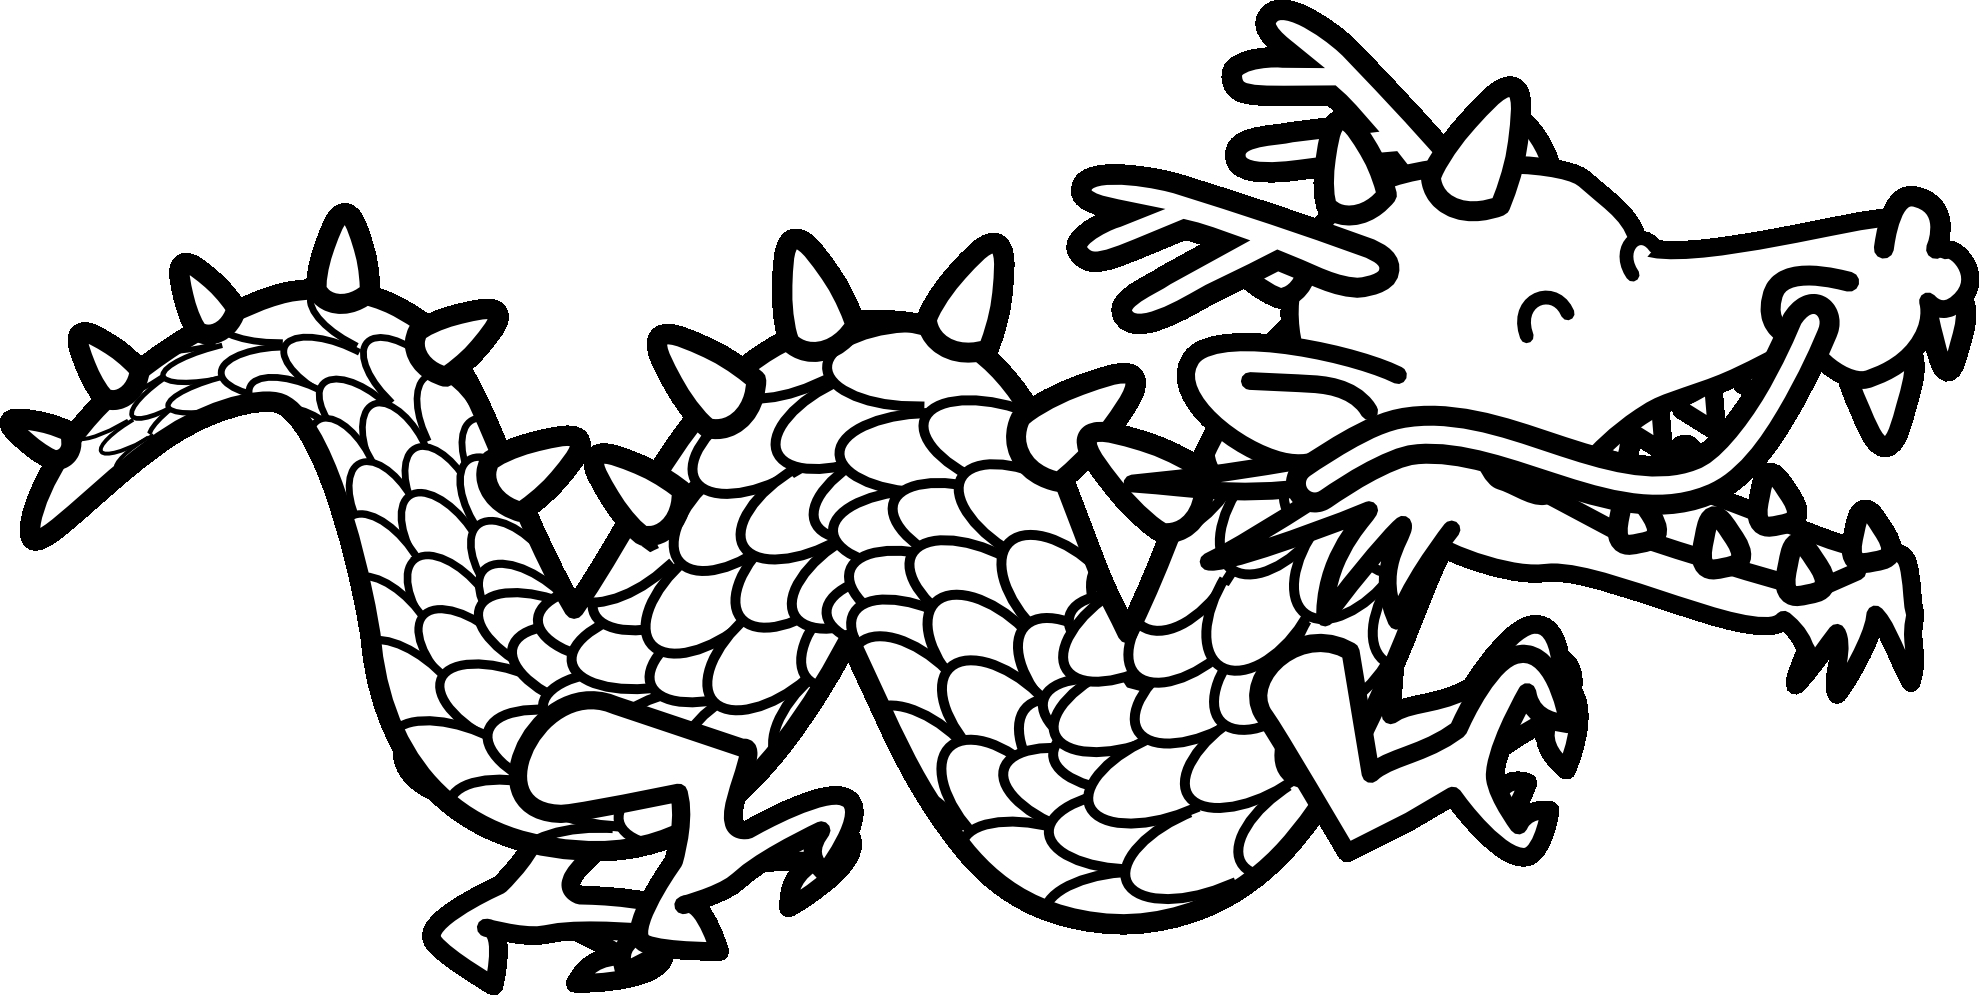 Chinese dragon tail clipart picture transparent Chinese dragon clipart Lovely Chinese Dragon Black And White ... picture transparent